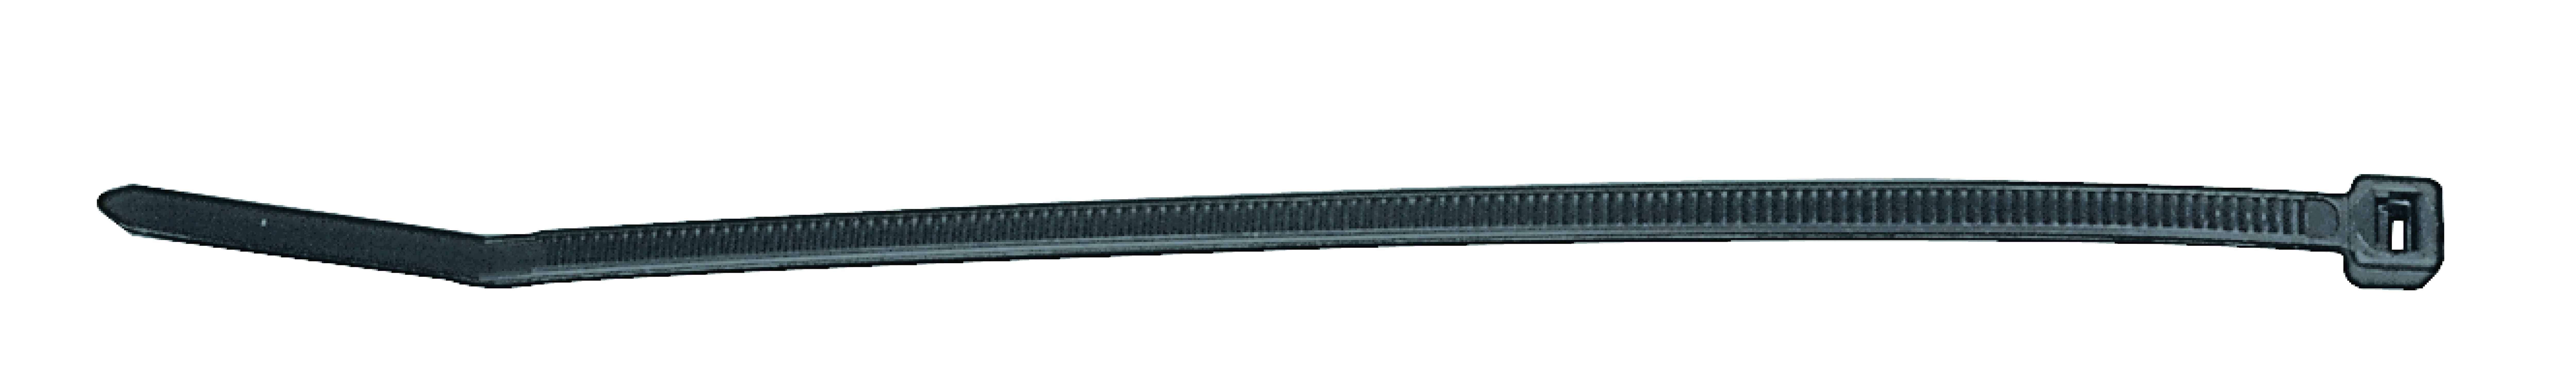 1500 x Cable Ties 20cm Long 3.6mm Wide - Black